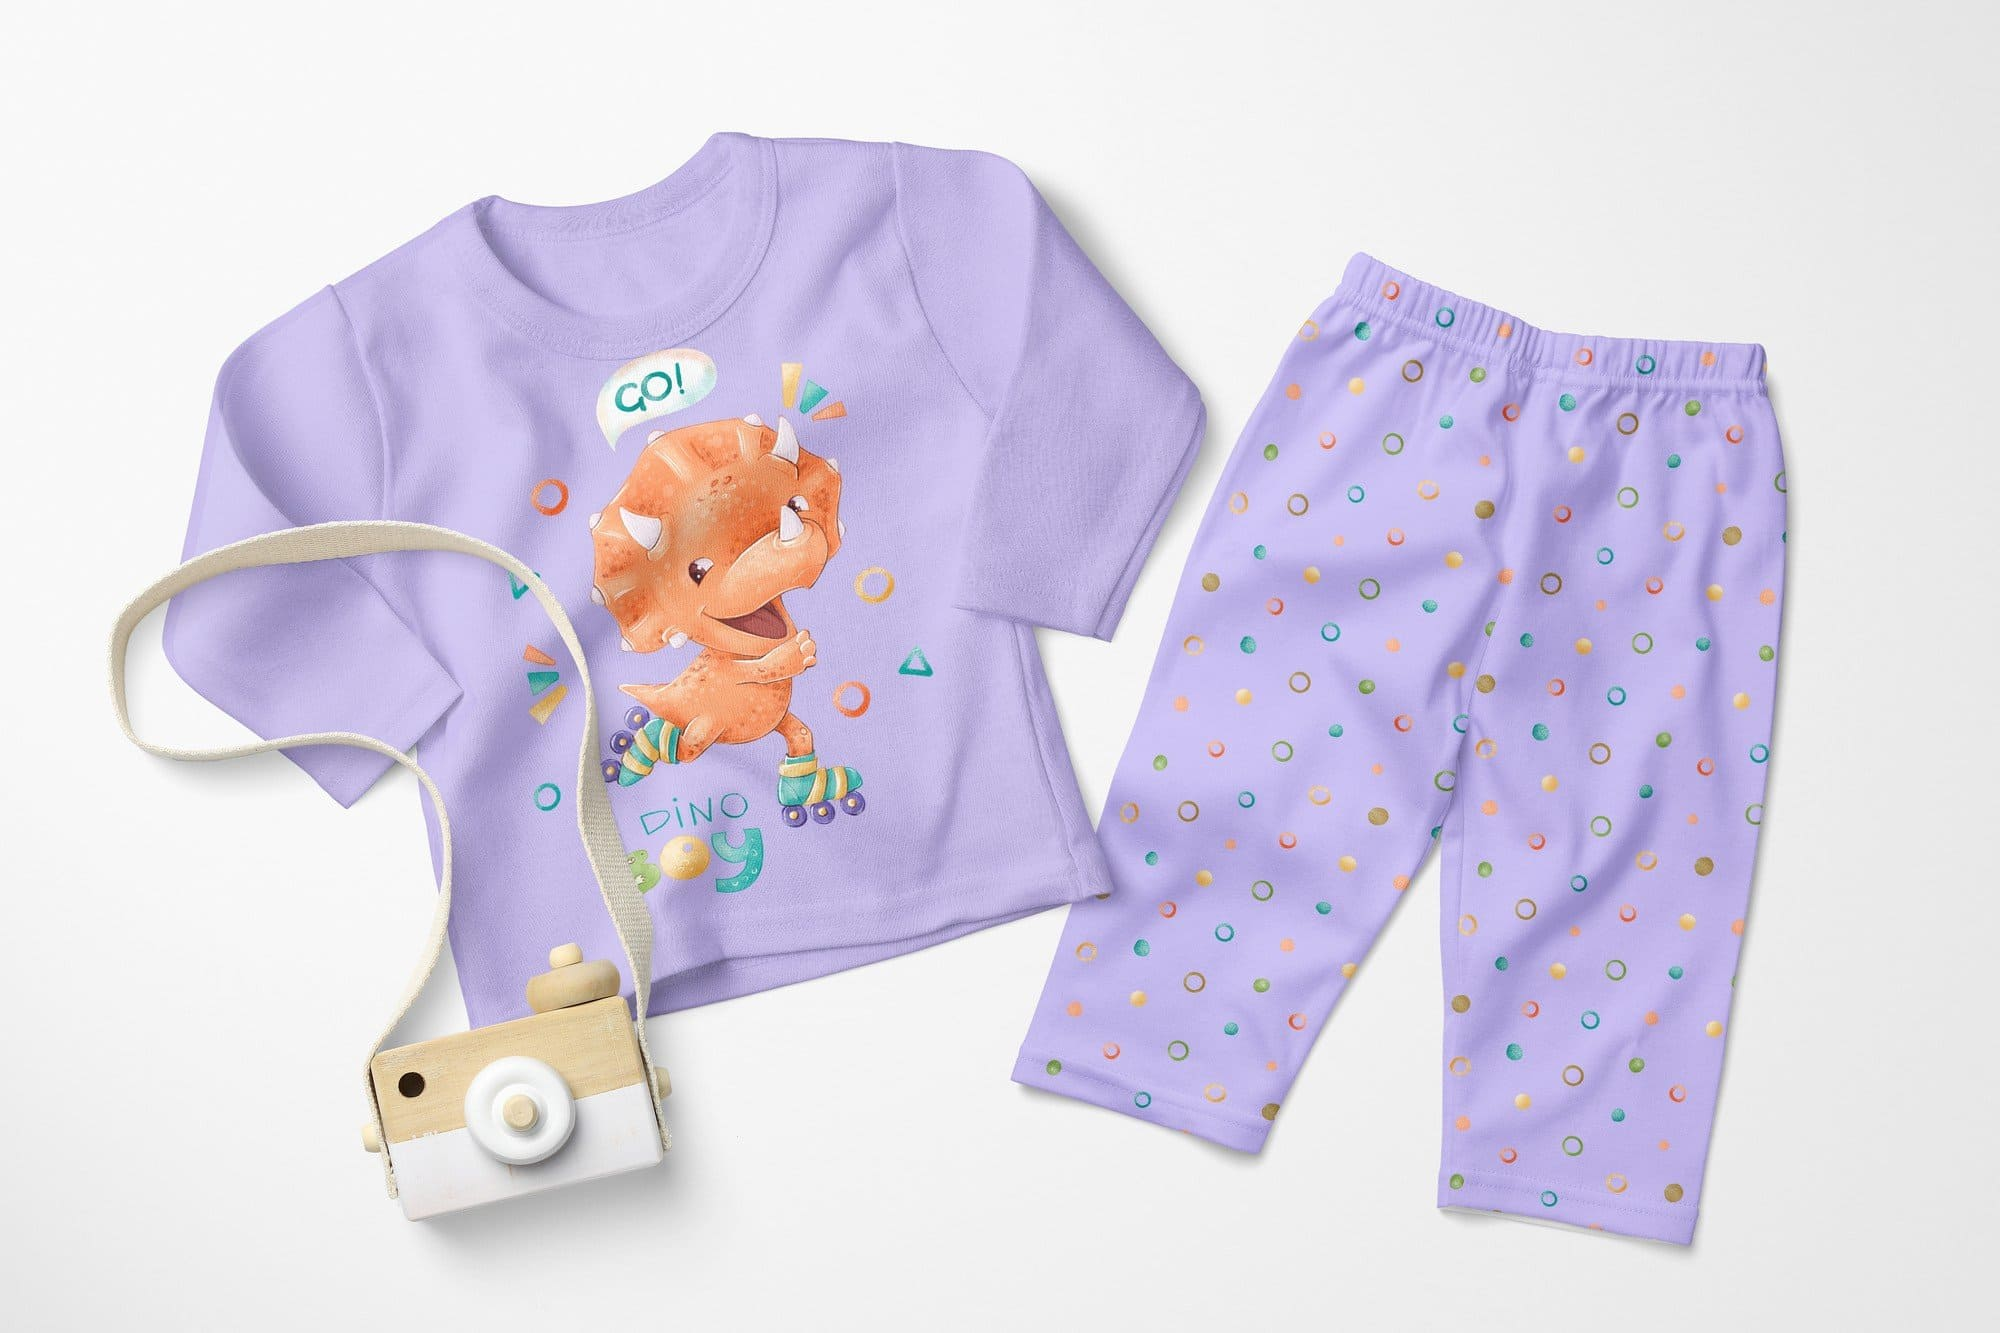 Cute pajamas for the smallest..